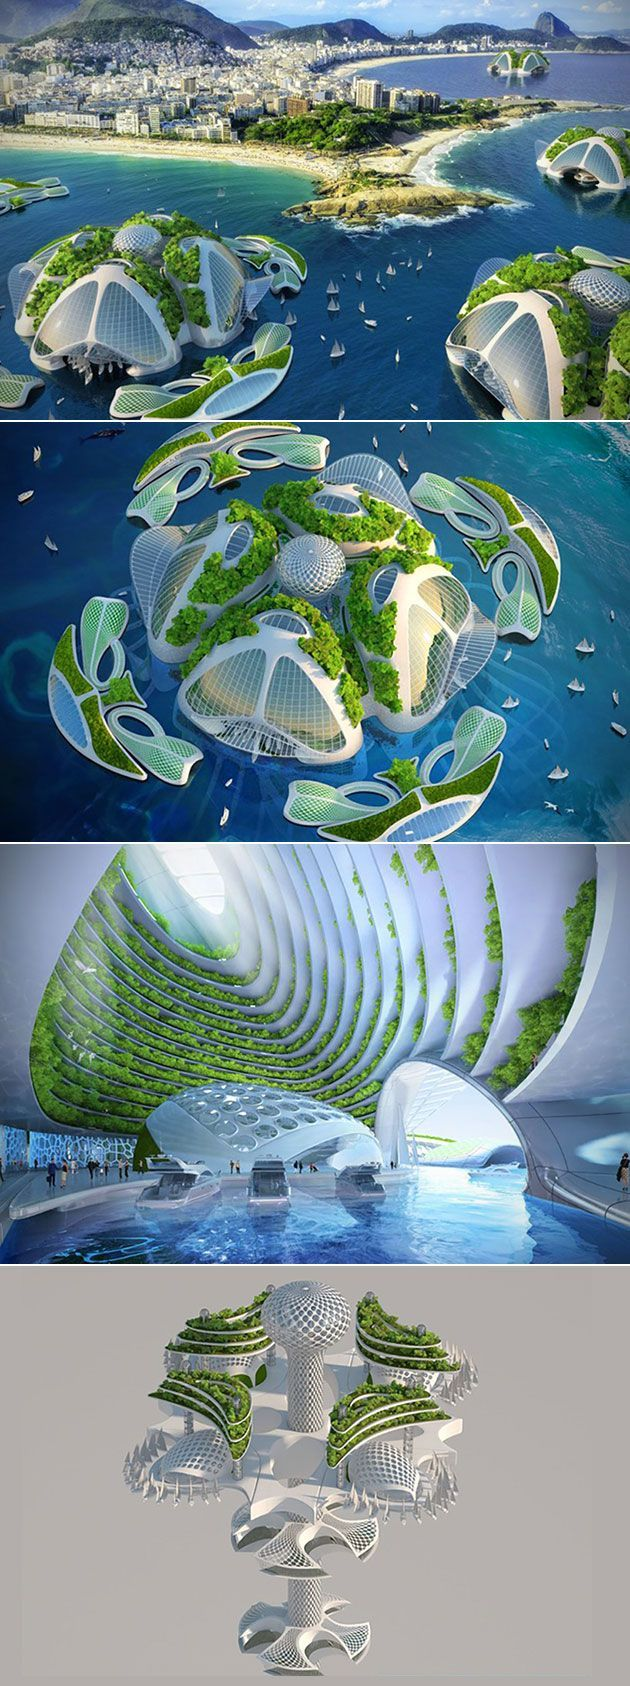 Architect Vincent Callebaut's creation Aequorea is a stunning 3D-printed oceanscraper settlement.           The village can not only house up to 20,000 people, but it is also self-sufficient, thus reducing Earth's carbon footprint.    Above the surface are the entrance and some docks. Spiraling 1,000-meters down are the homes, offices, workshops, science laboratories, sea farms, agricultural areas, as well as the shared orchards.